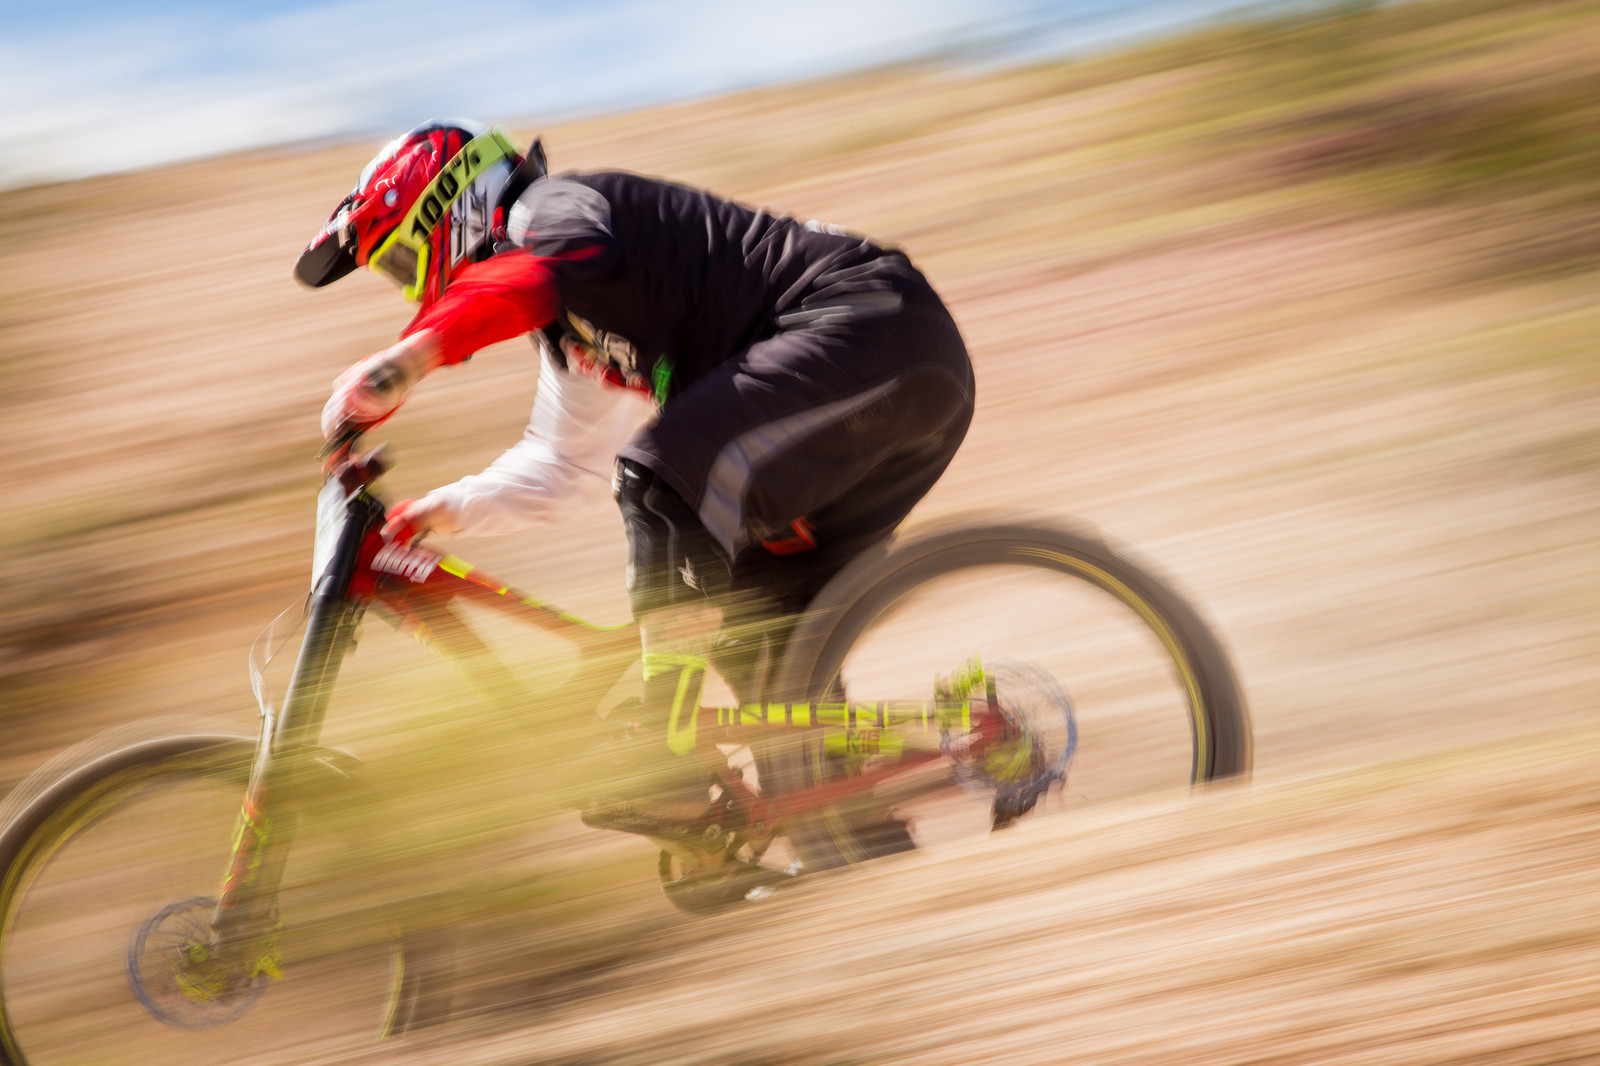 2017 Reaper Madness DH at Bootleg Canyon-57 - 2017 Reaper Madness DH Photos - Mountain Biking Pictures - Vital MTB